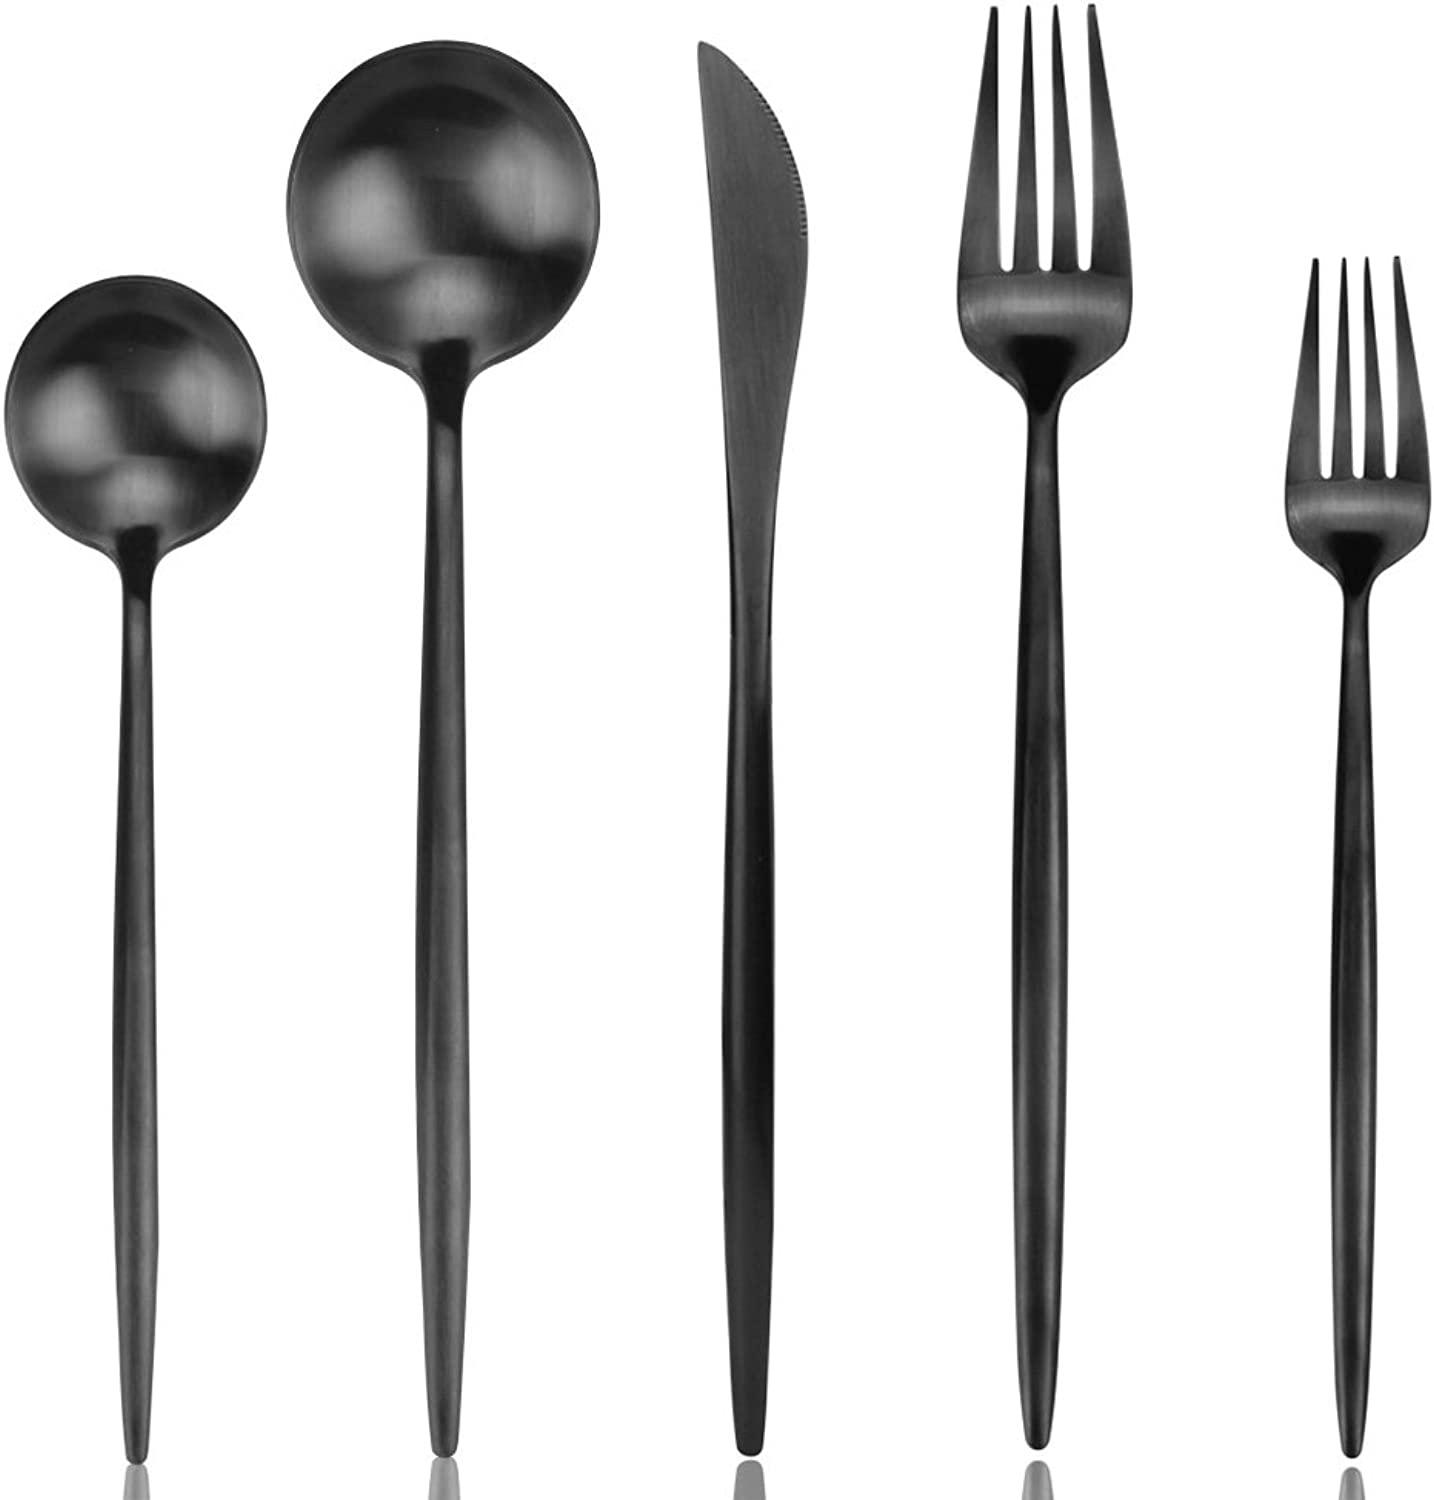 Black Flatware, Black Silverware Set, AOOSY Luxury 20 Pieces 18 10 Stainless Steel Matte Cutlery Utensil Tableware Sets, Include Knives Forks Spoons for Kitchen Service for 4, DISHWASHER SAFE